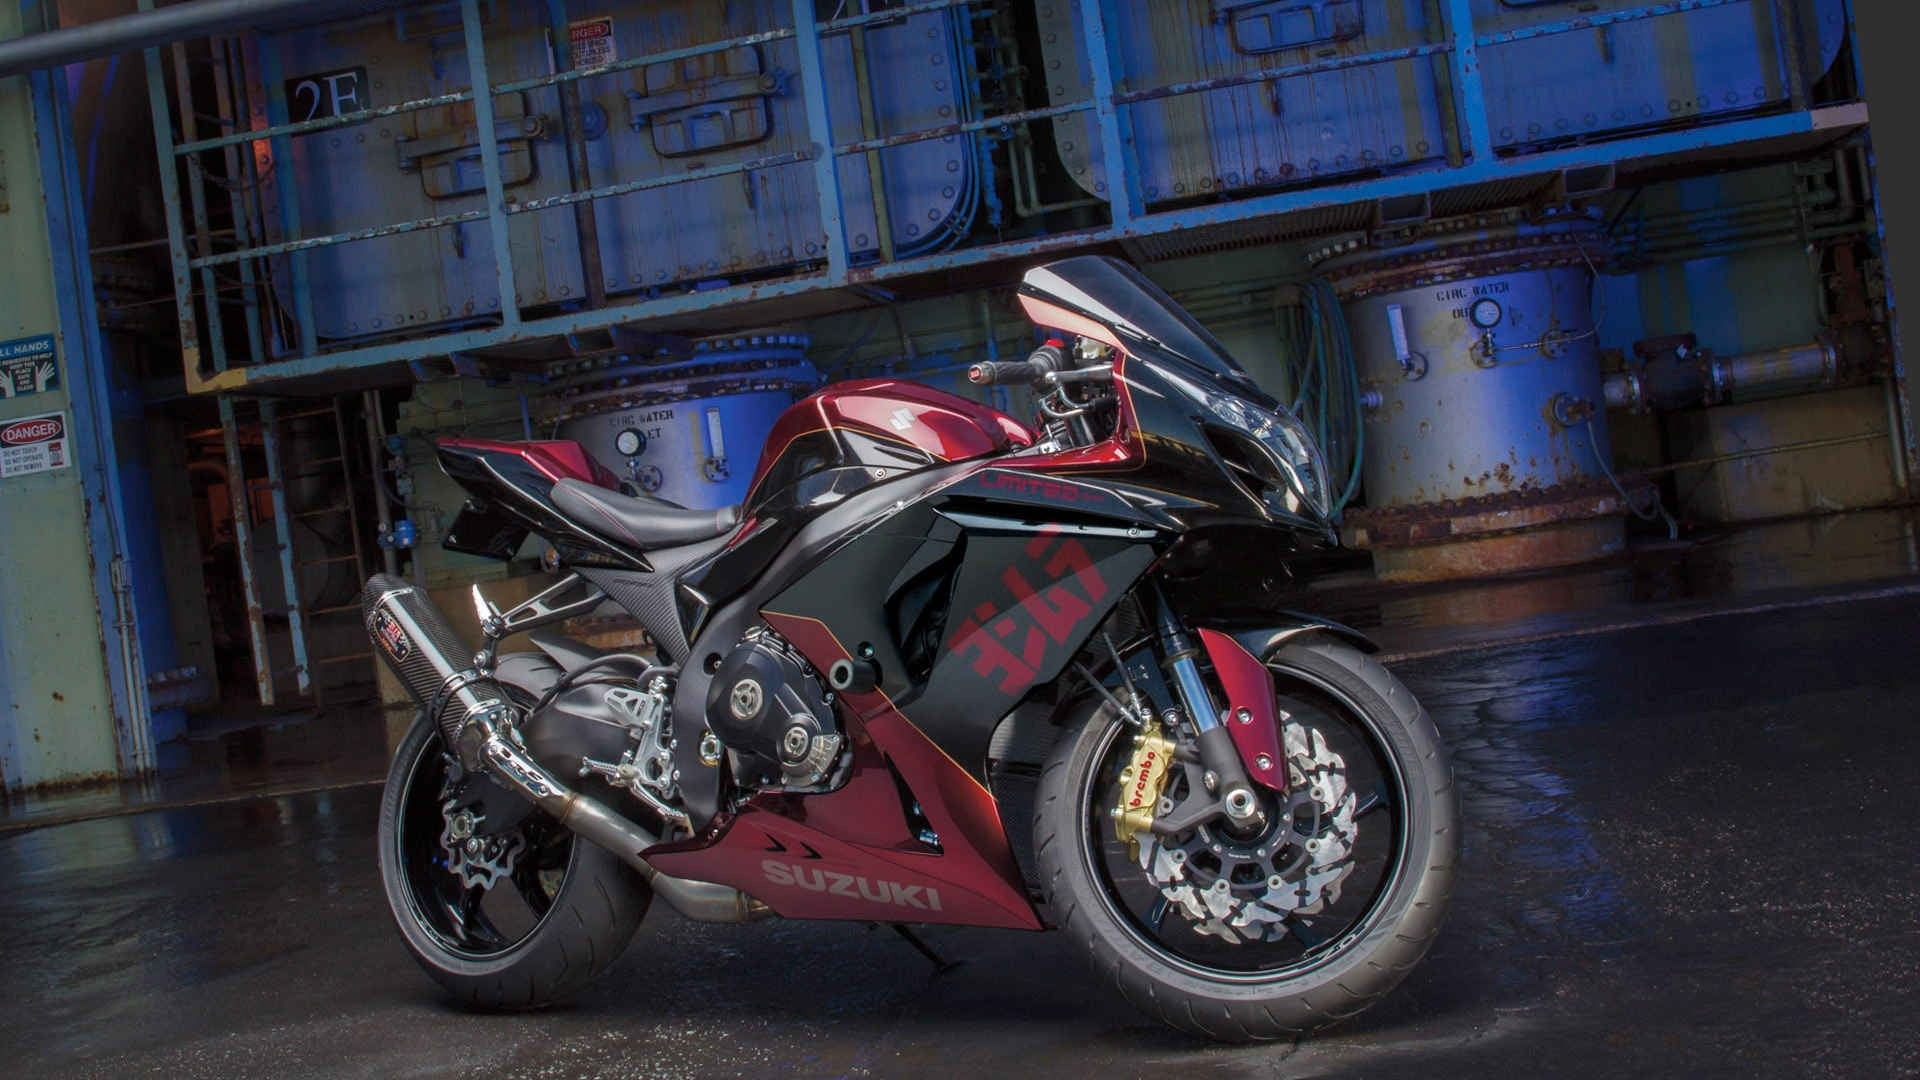 Yamaha Electric Motorcycle >> 2013 Yoshimura Limited Edition Suzuki GSX-R [Video ...